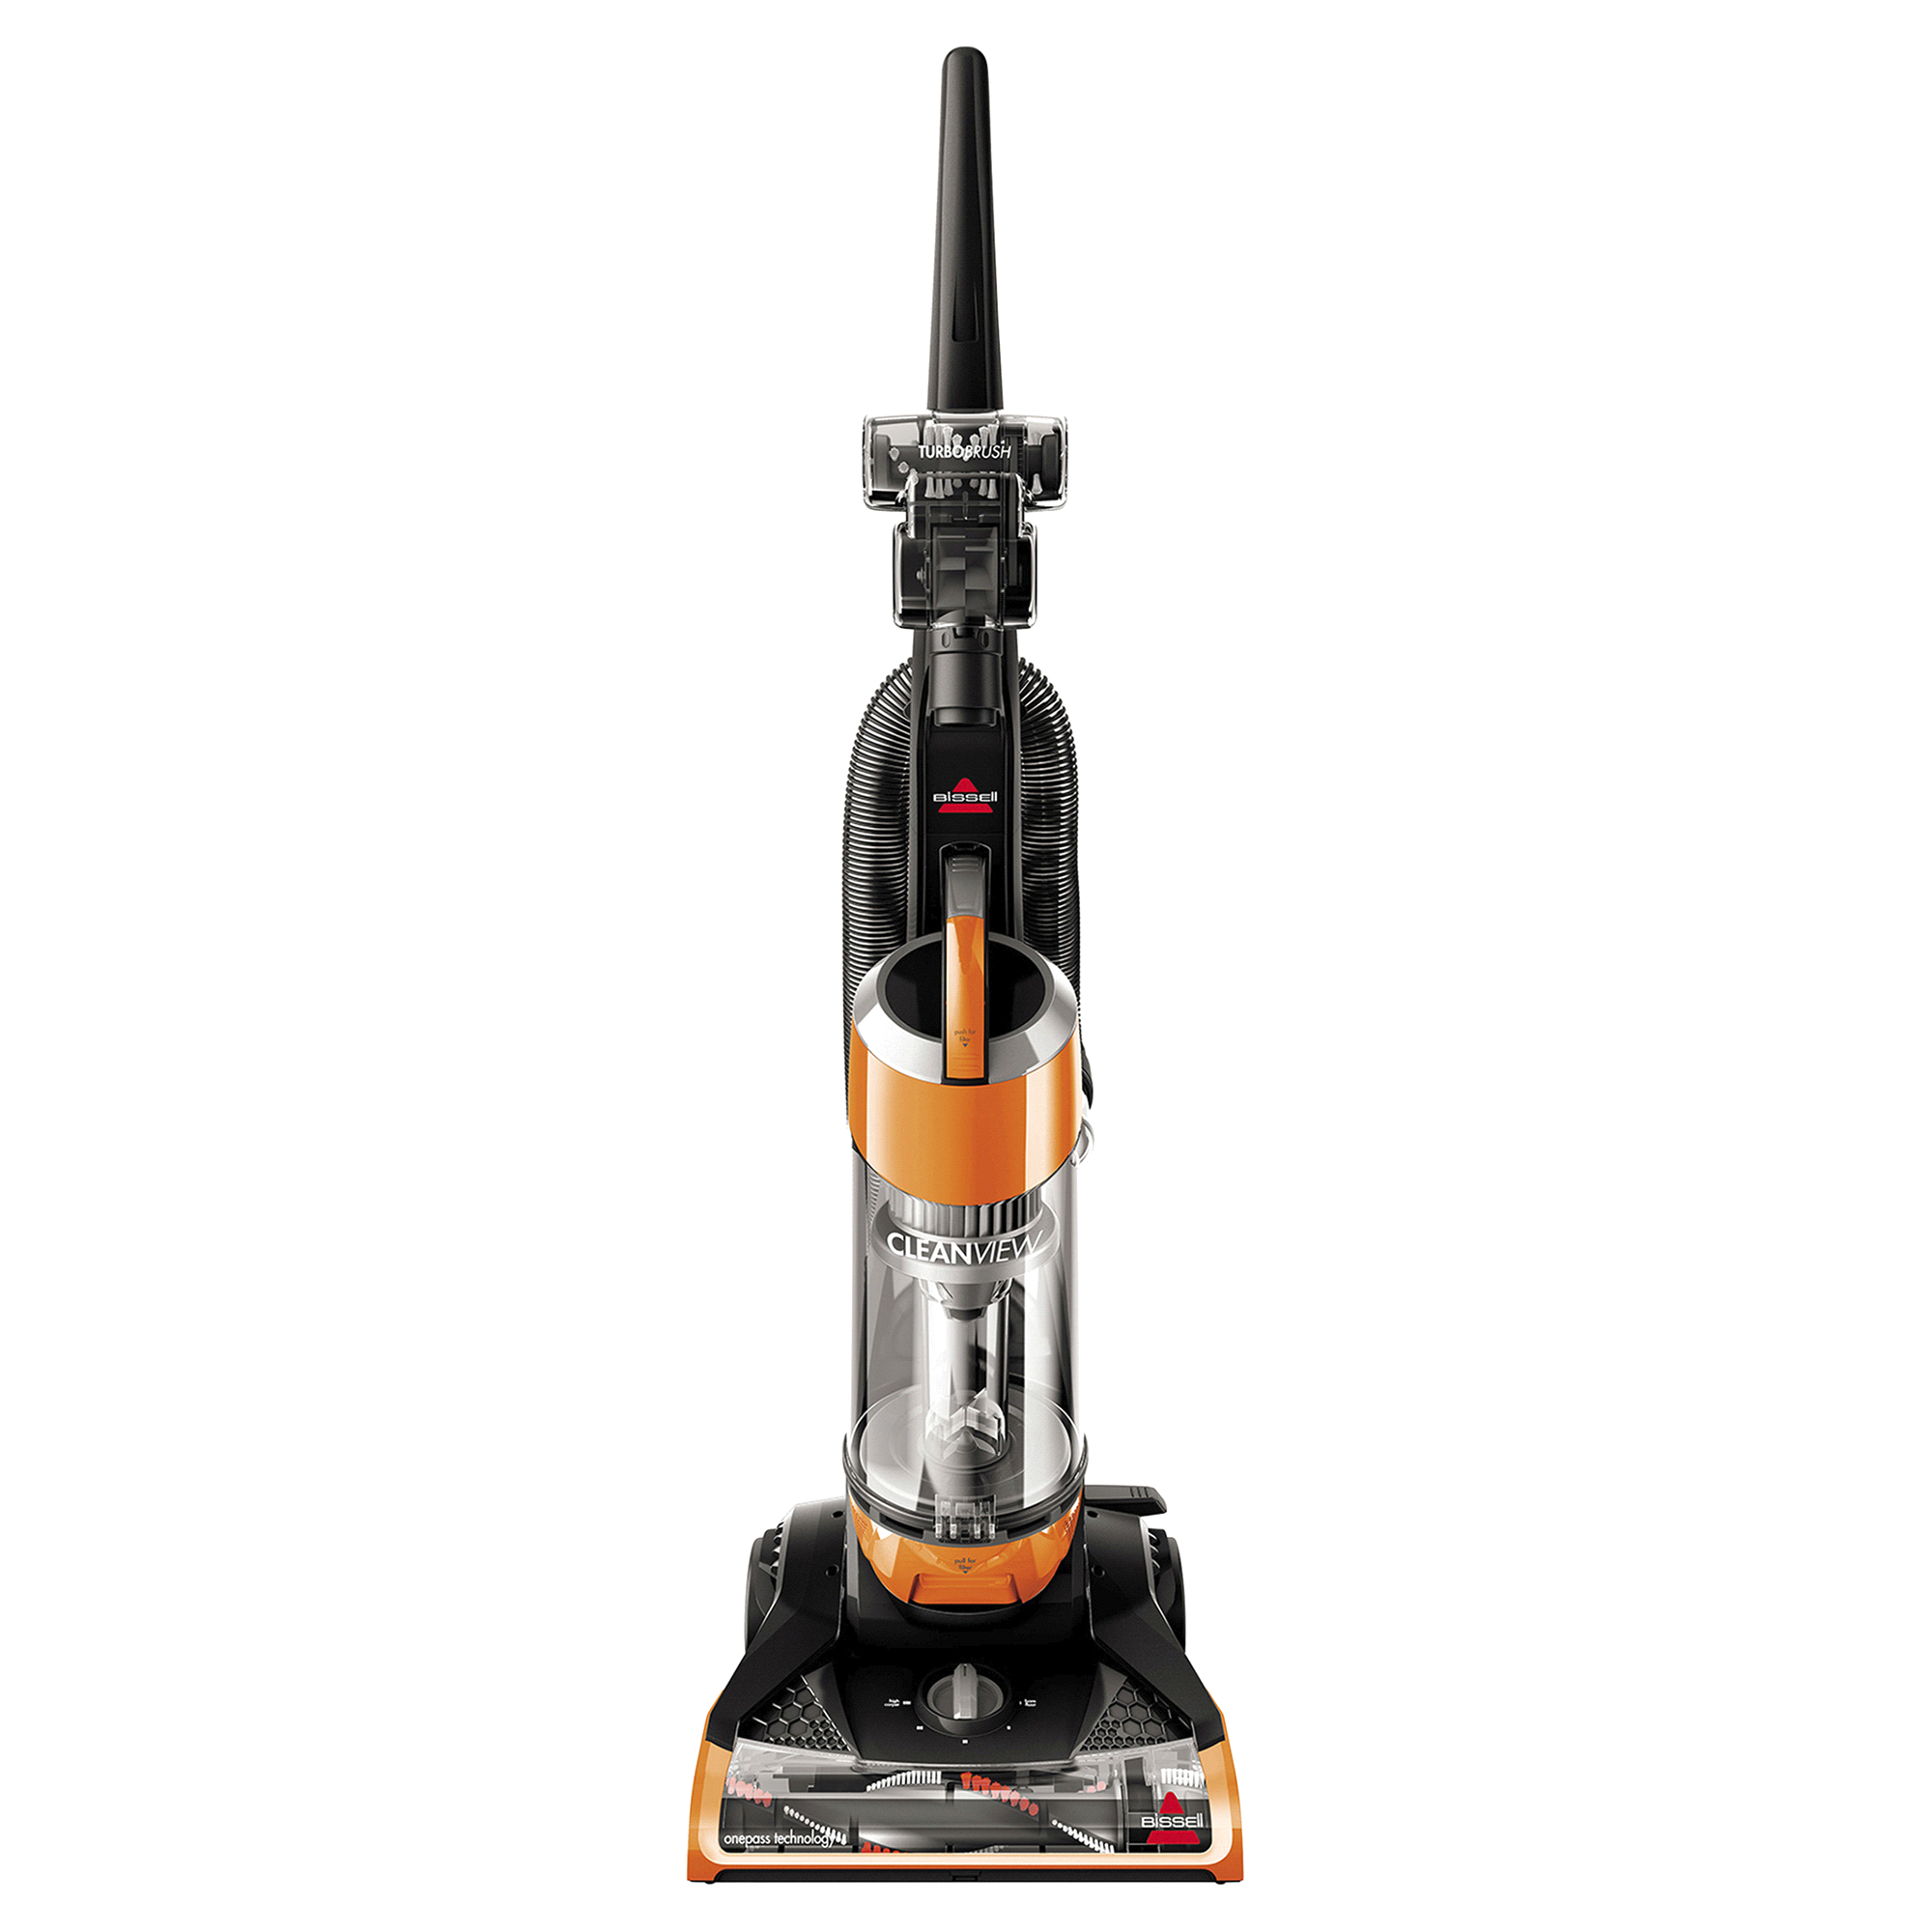 Bissell Cleanview Upright Bagless Vacuum Cleaner with OnePass Technology